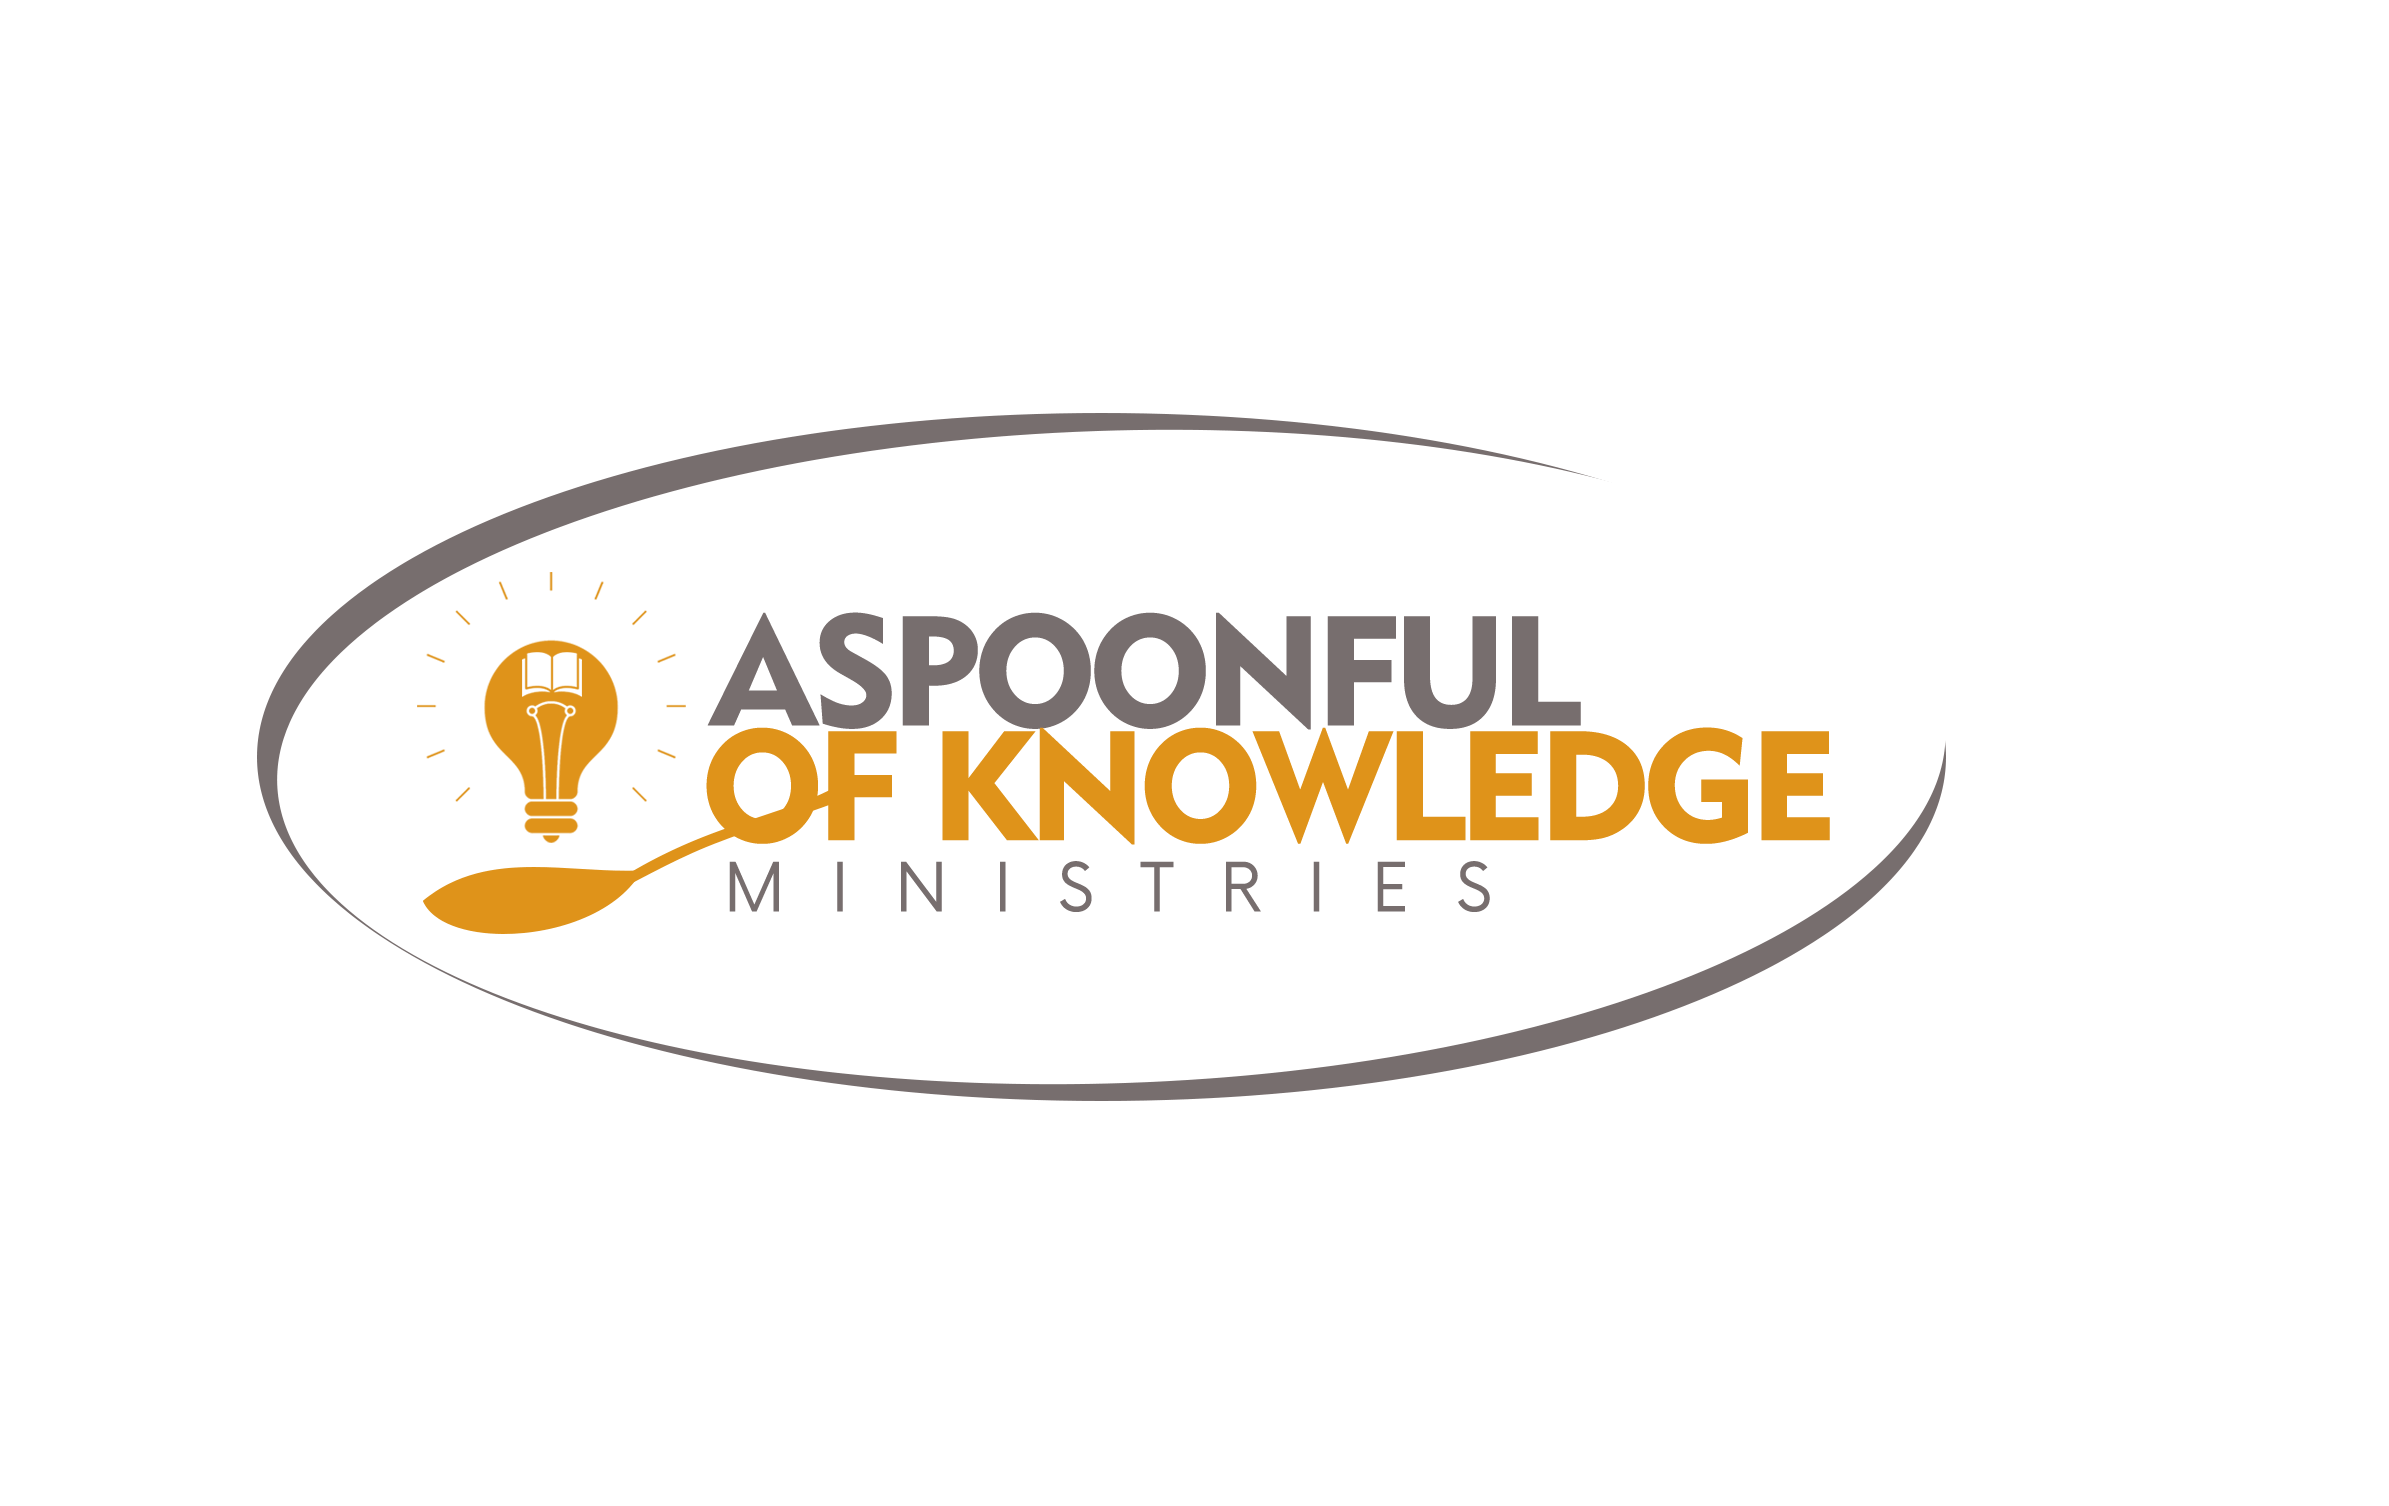 Aspoonful of knowledge Ministries